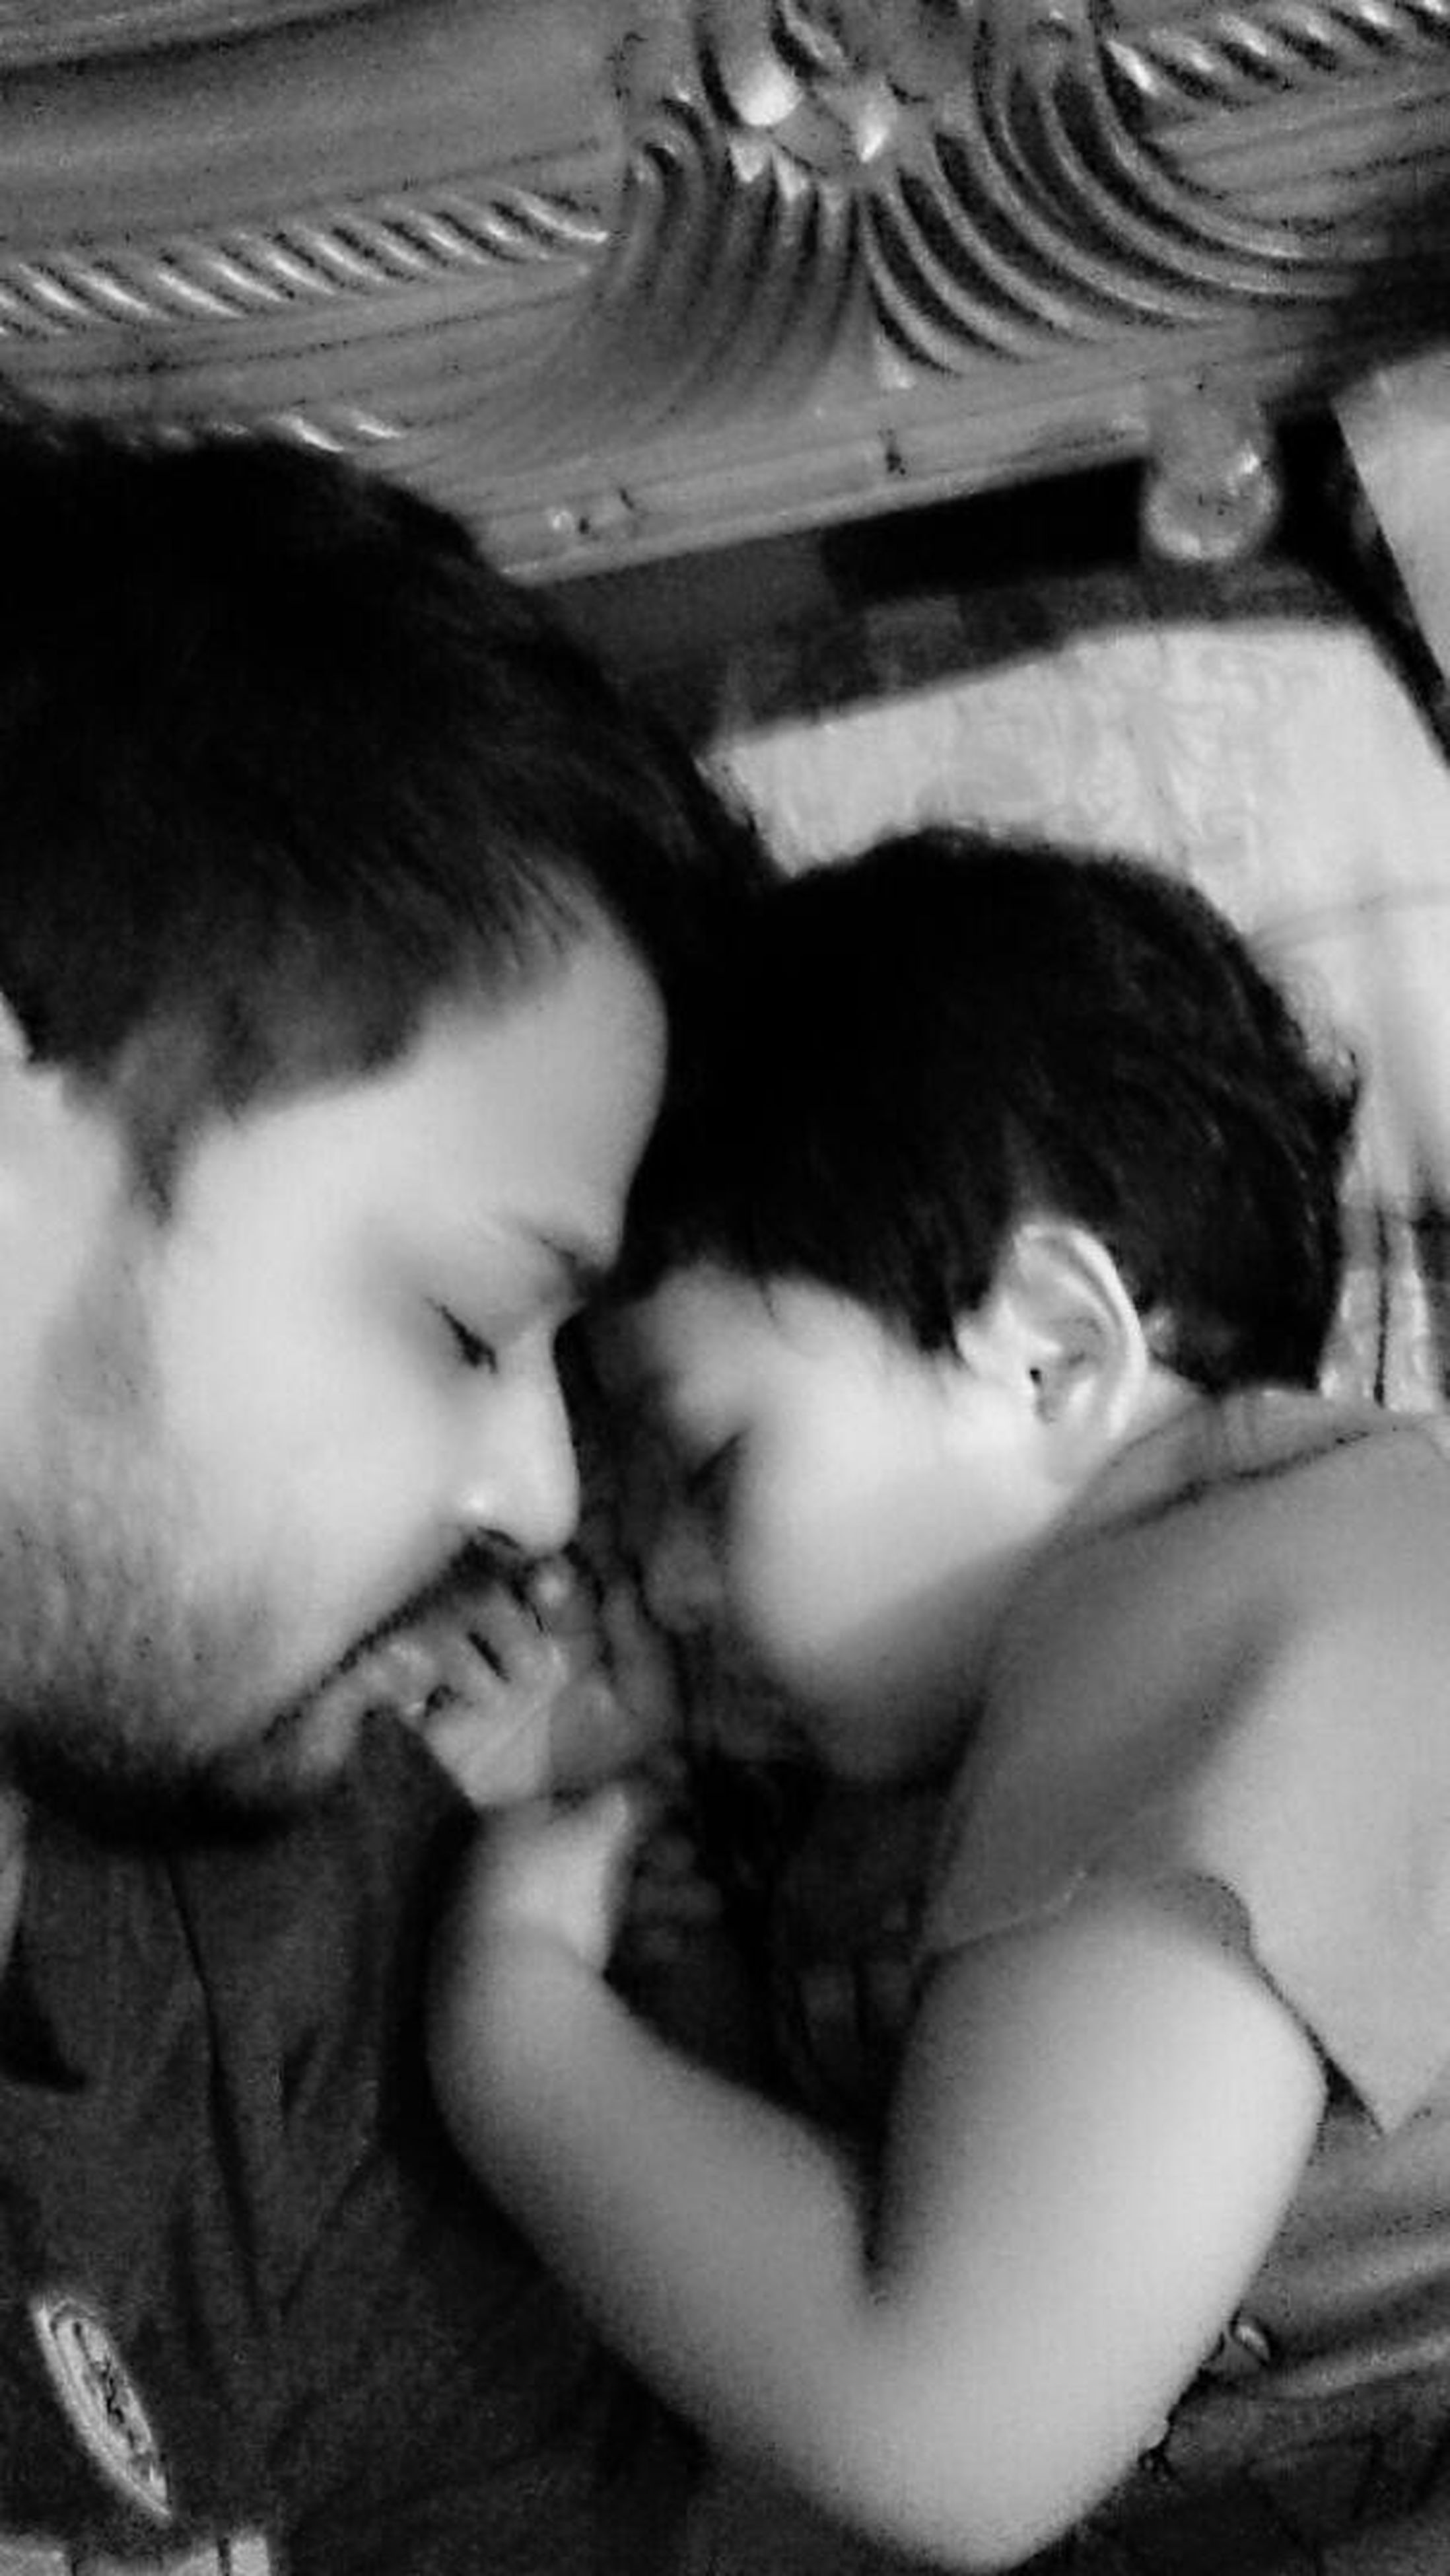 indoors, lifestyles, leisure activity, childhood, person, relaxation, high angle view, bonding, innocence, togetherness, elementary age, headshot, boys, girls, lying down, cute, sleeping